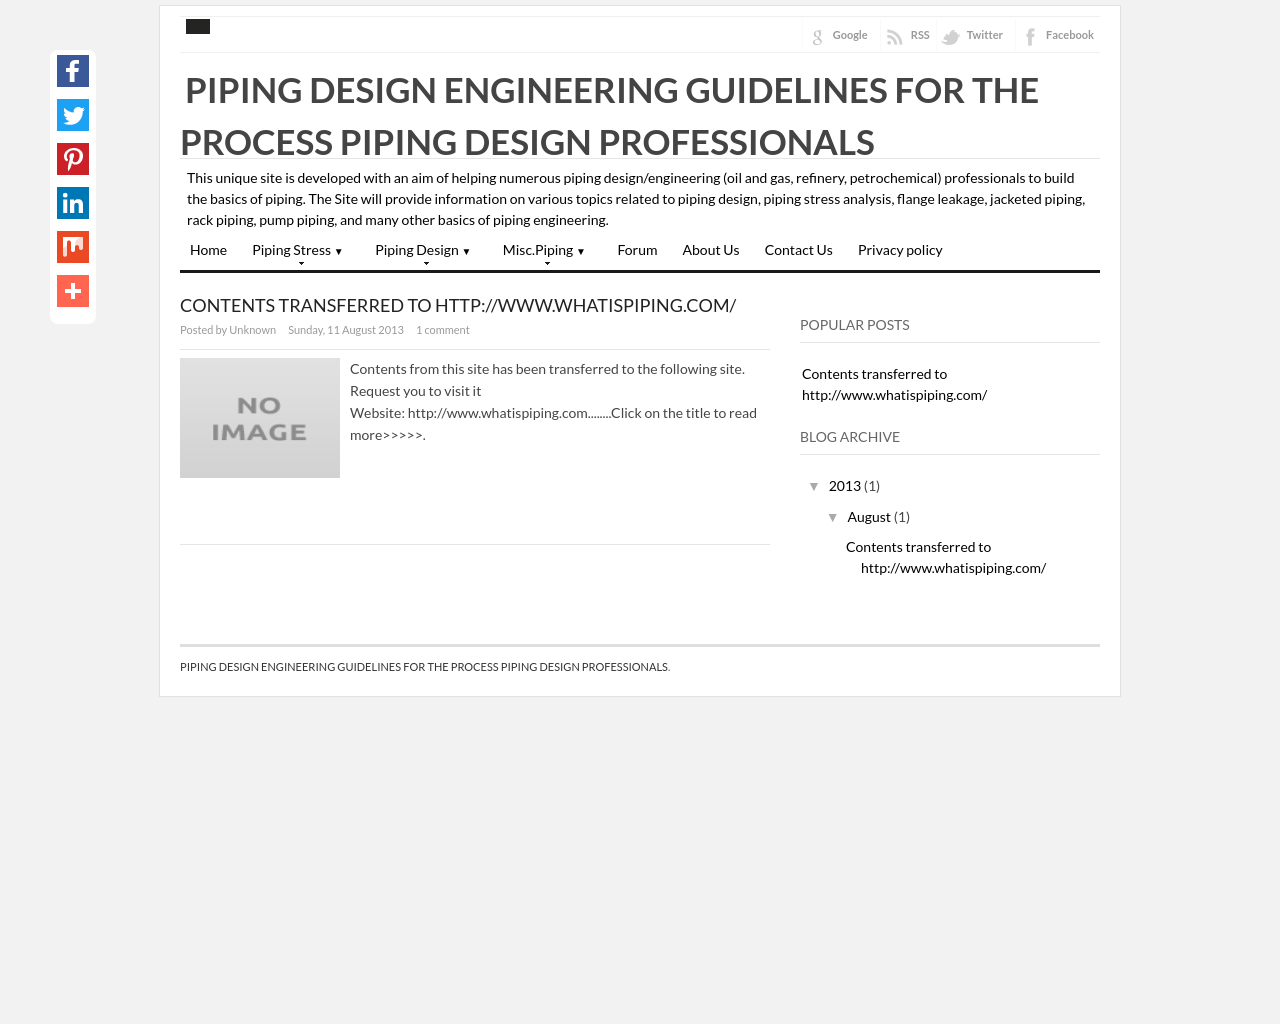 PIPING DESIGN ENGINEERING GUIDELINES FOR THE PROCESS PIPING DESIGN PROFESSIONALS